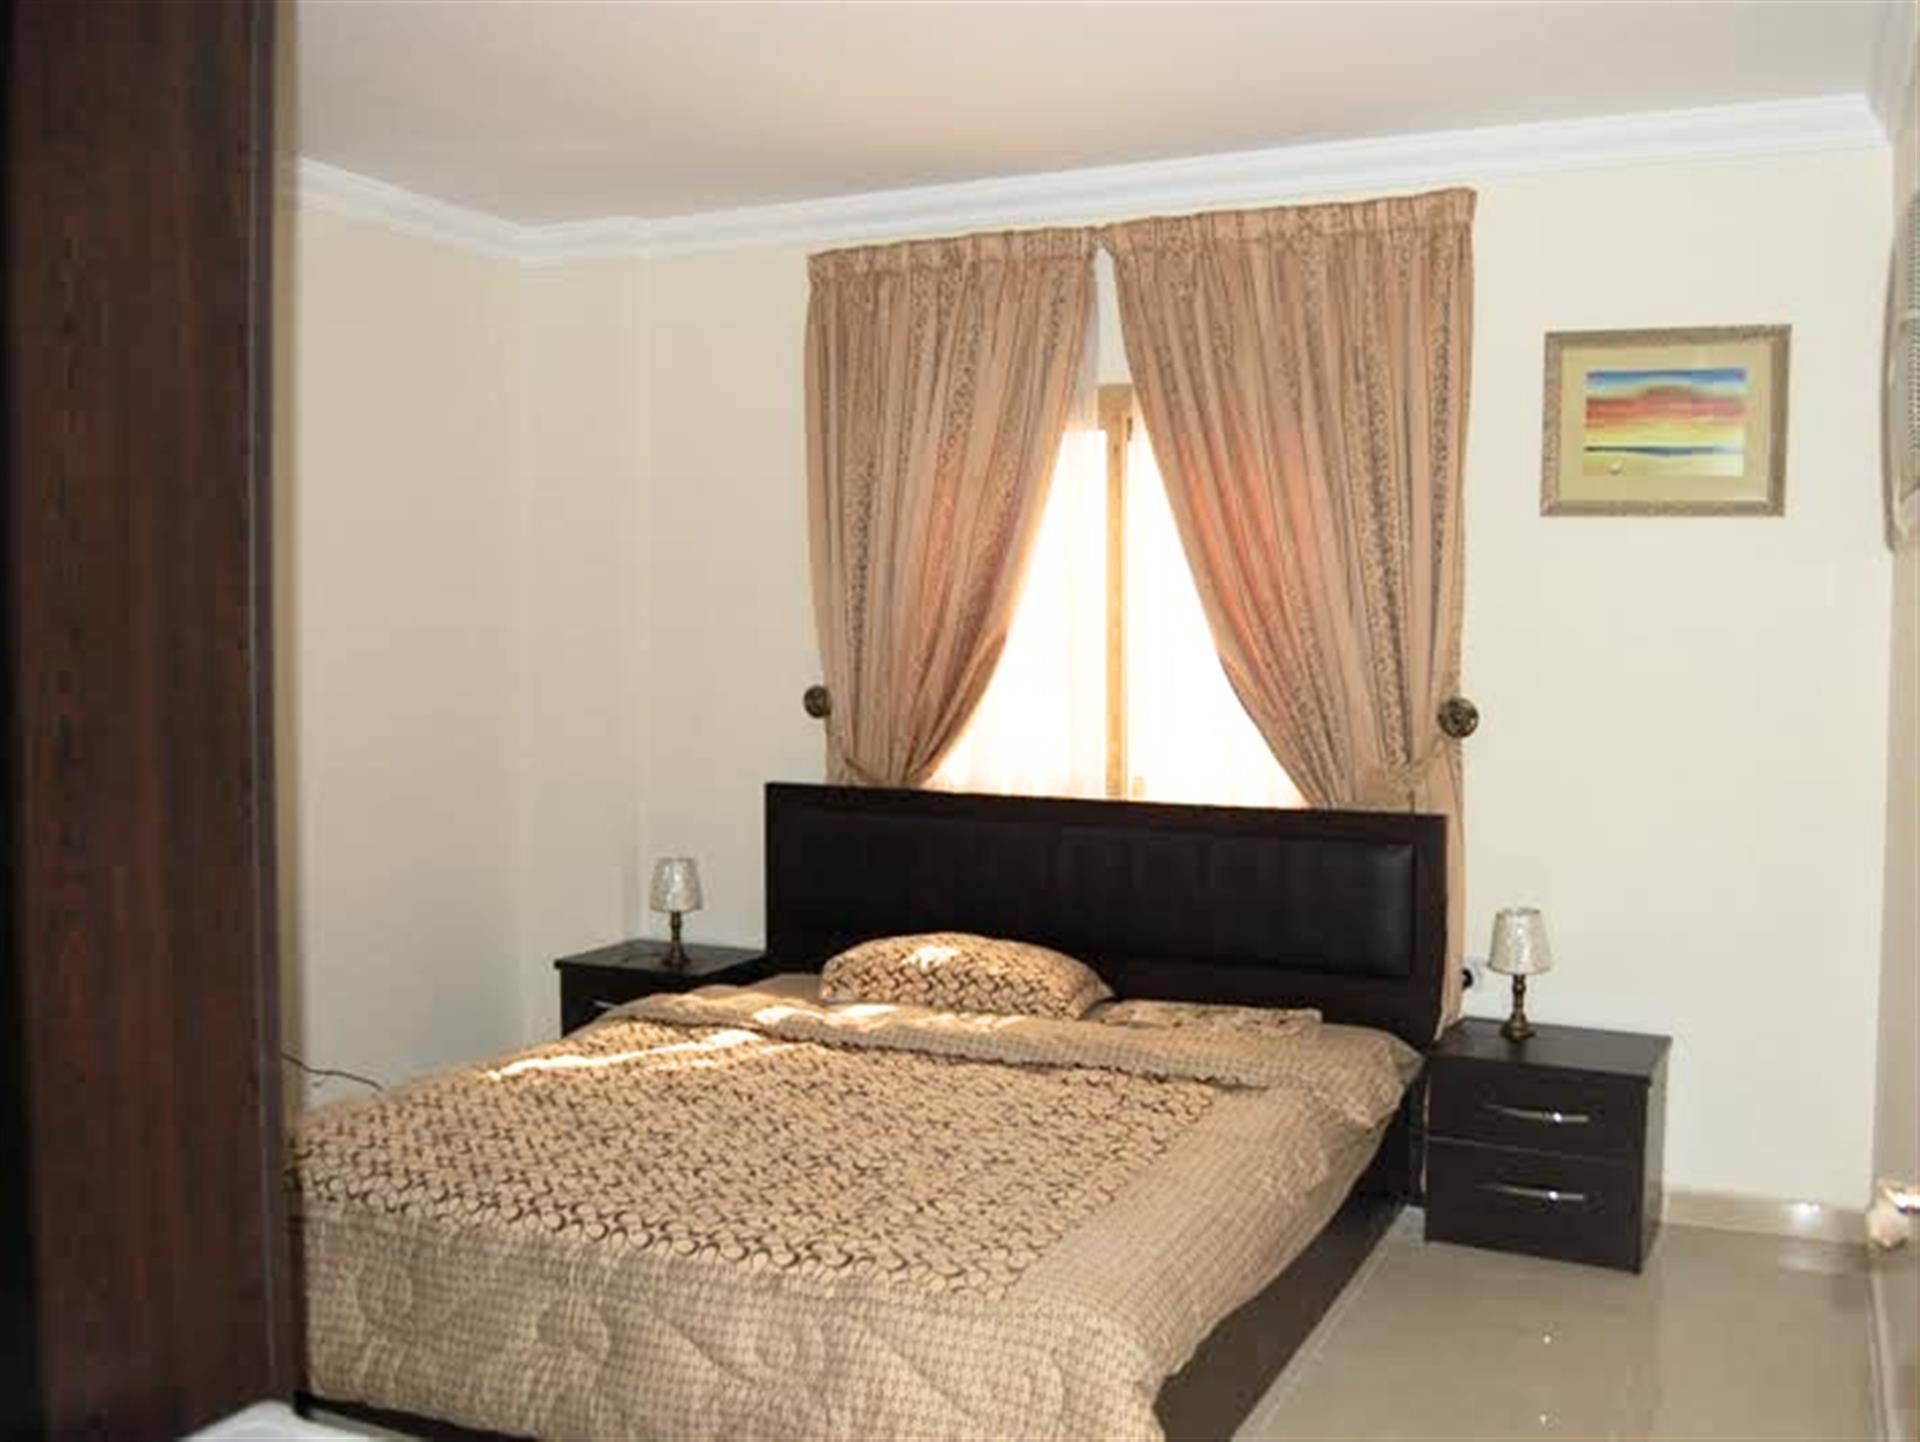 2 BHK FULLY FURNISHED Flat for RENT with many facilities Short / Long term available. NO COMMISSION